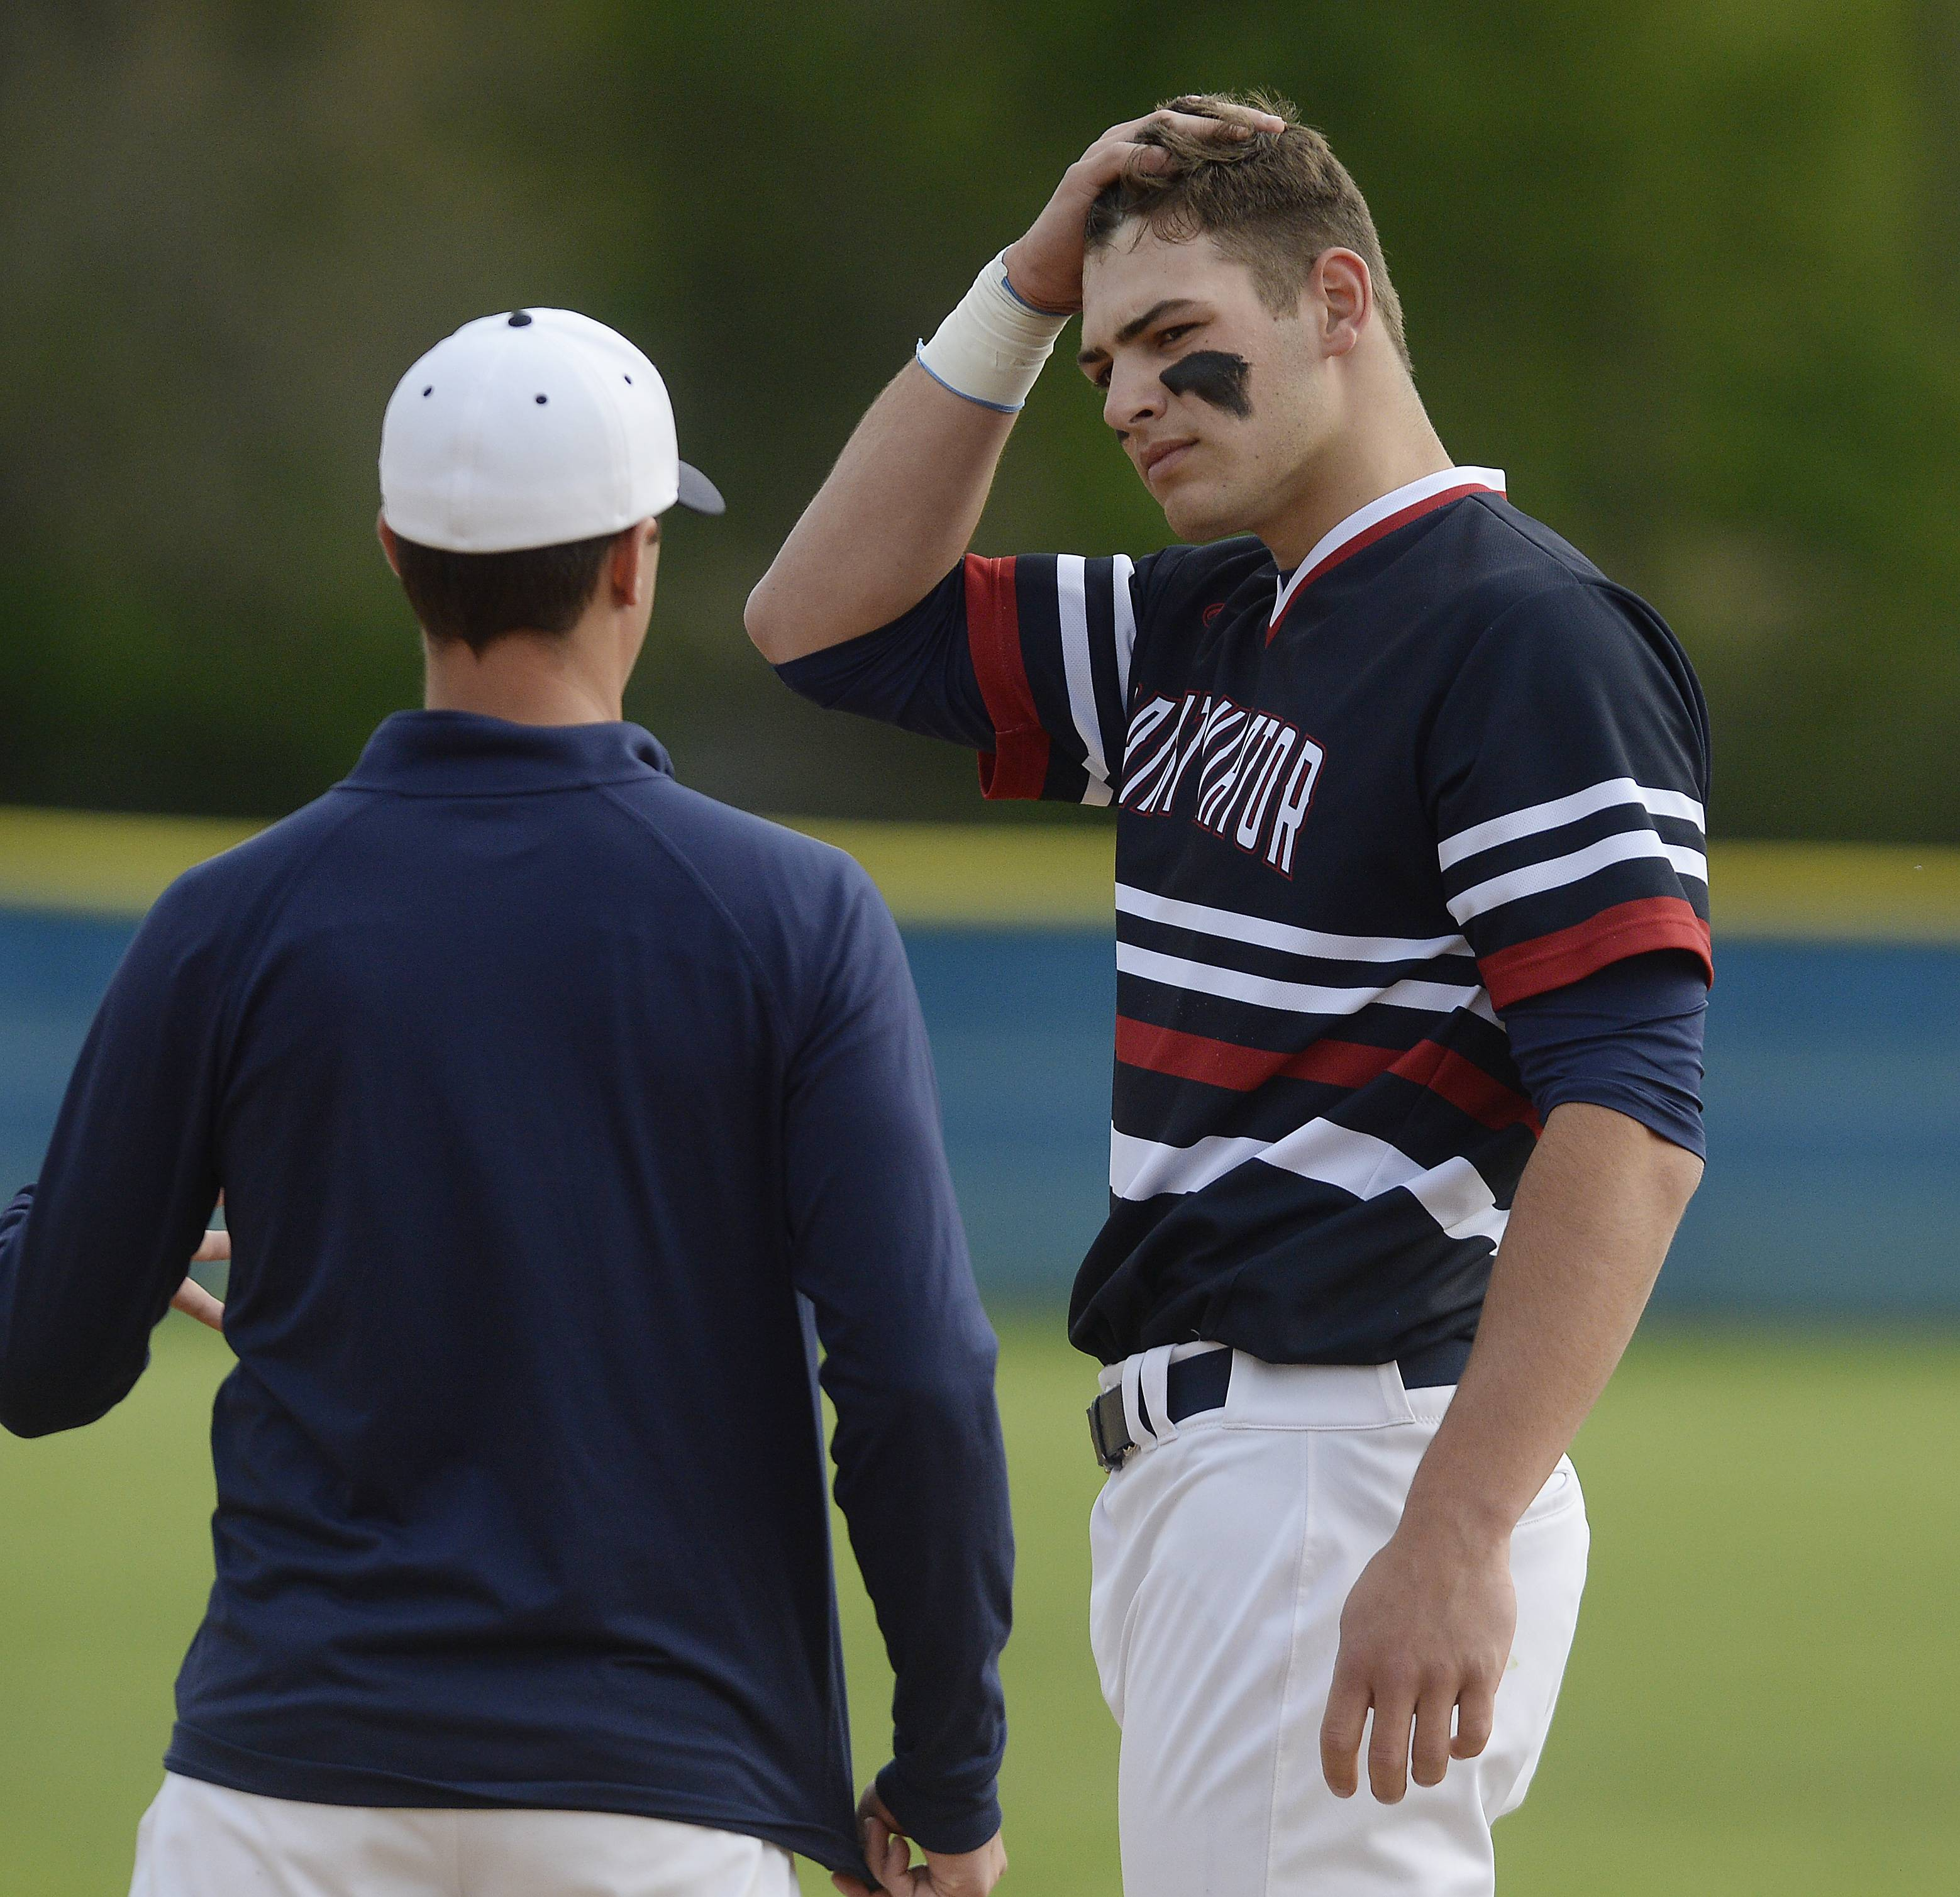 Two-sport standout Kmet makes his mark in baseball